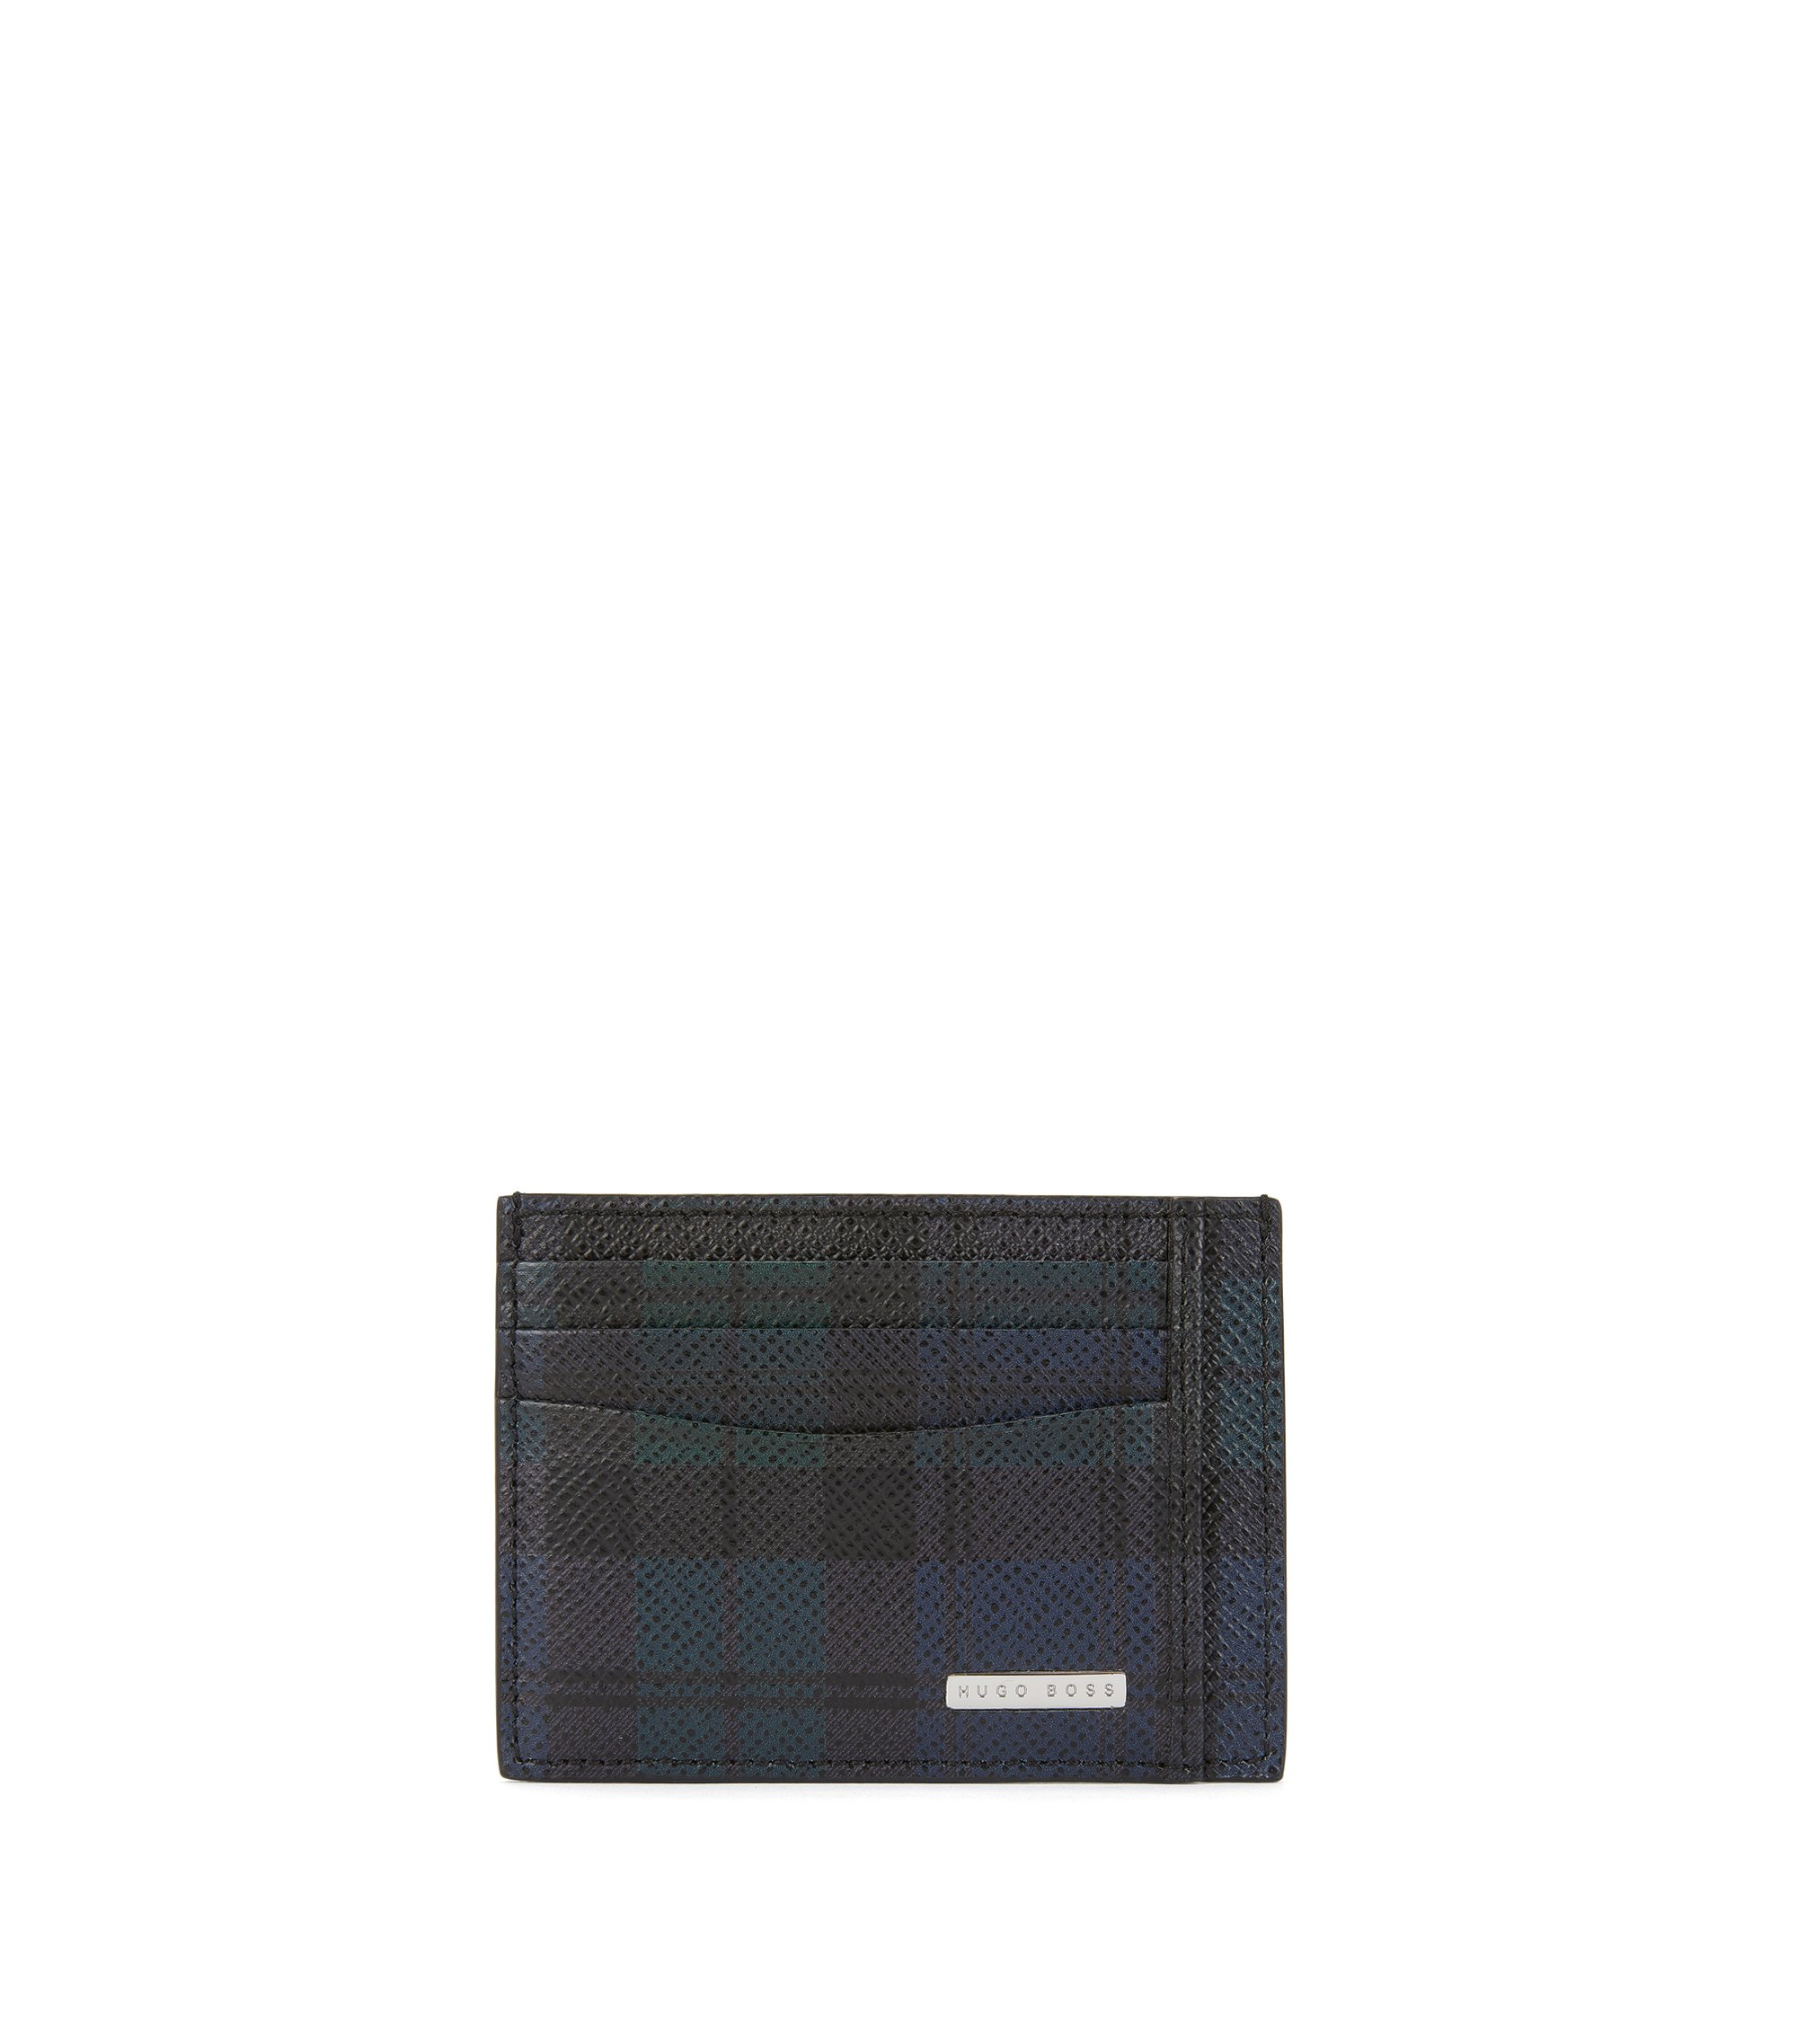 Black Watch Leather Card Holder | Signature BW S Card, Patterned